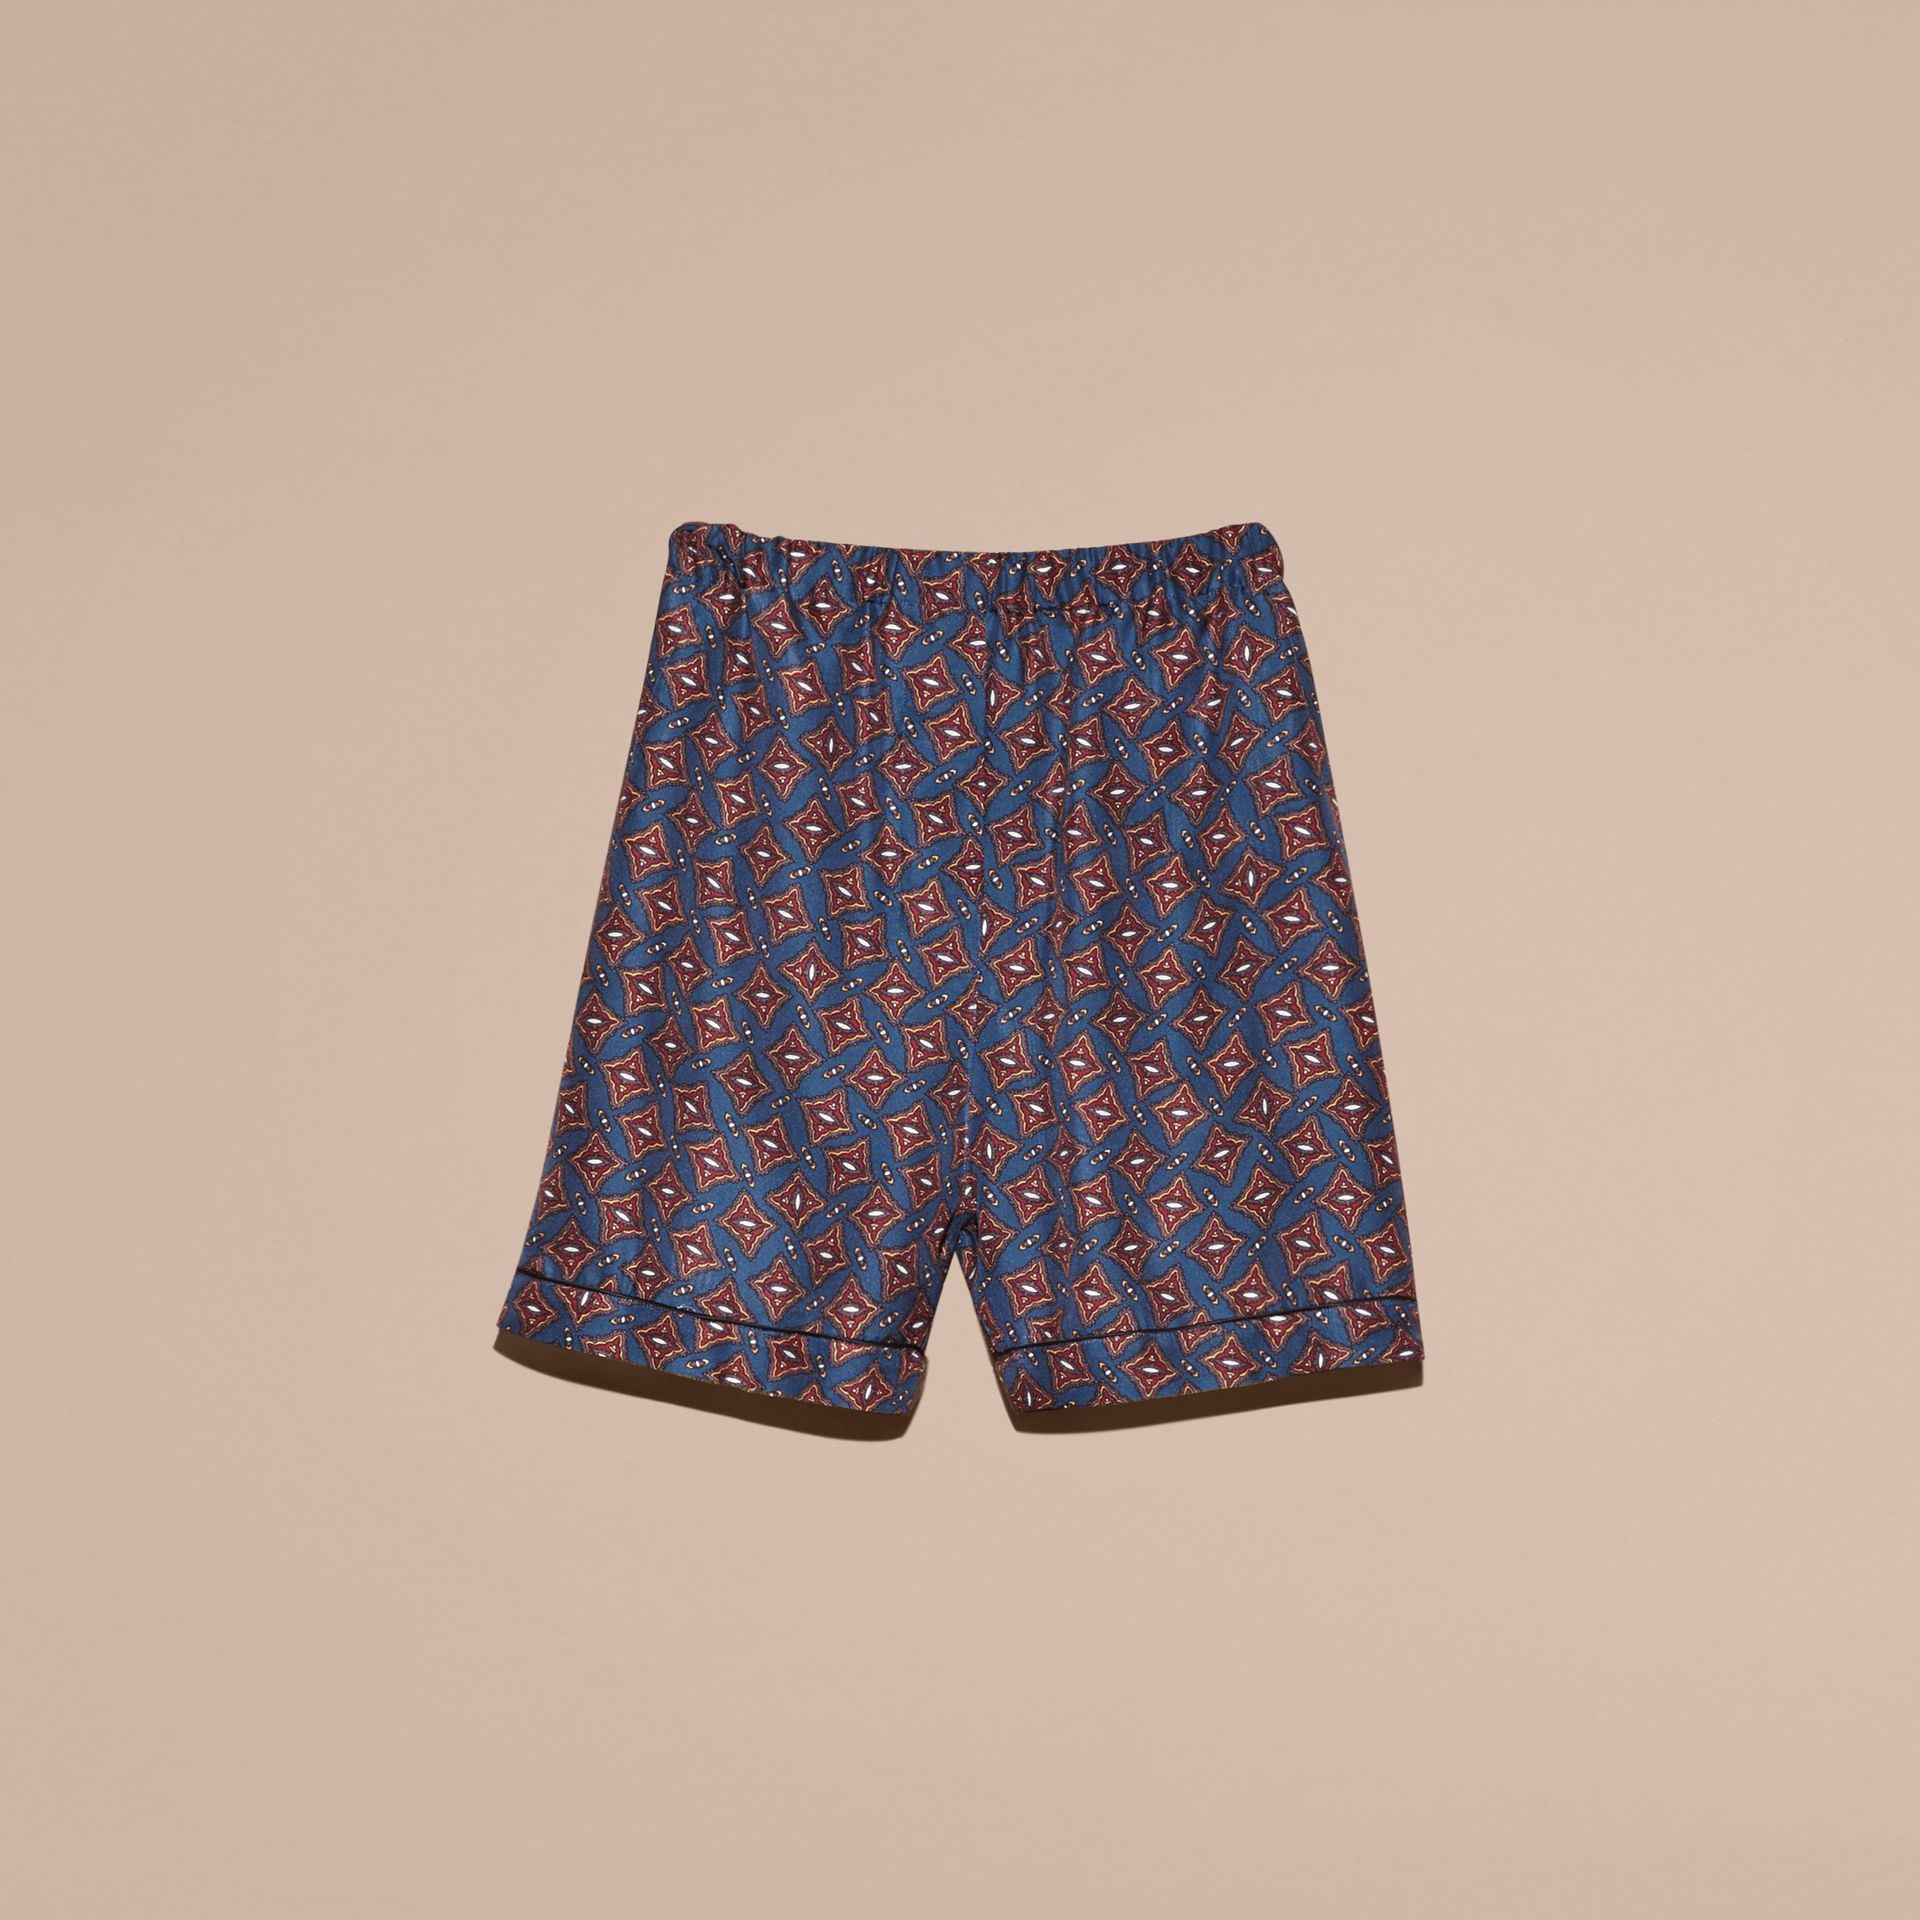 Navy Scattered Geometric Tile Print Silk Pyjama-style Shorts - gallery image 4